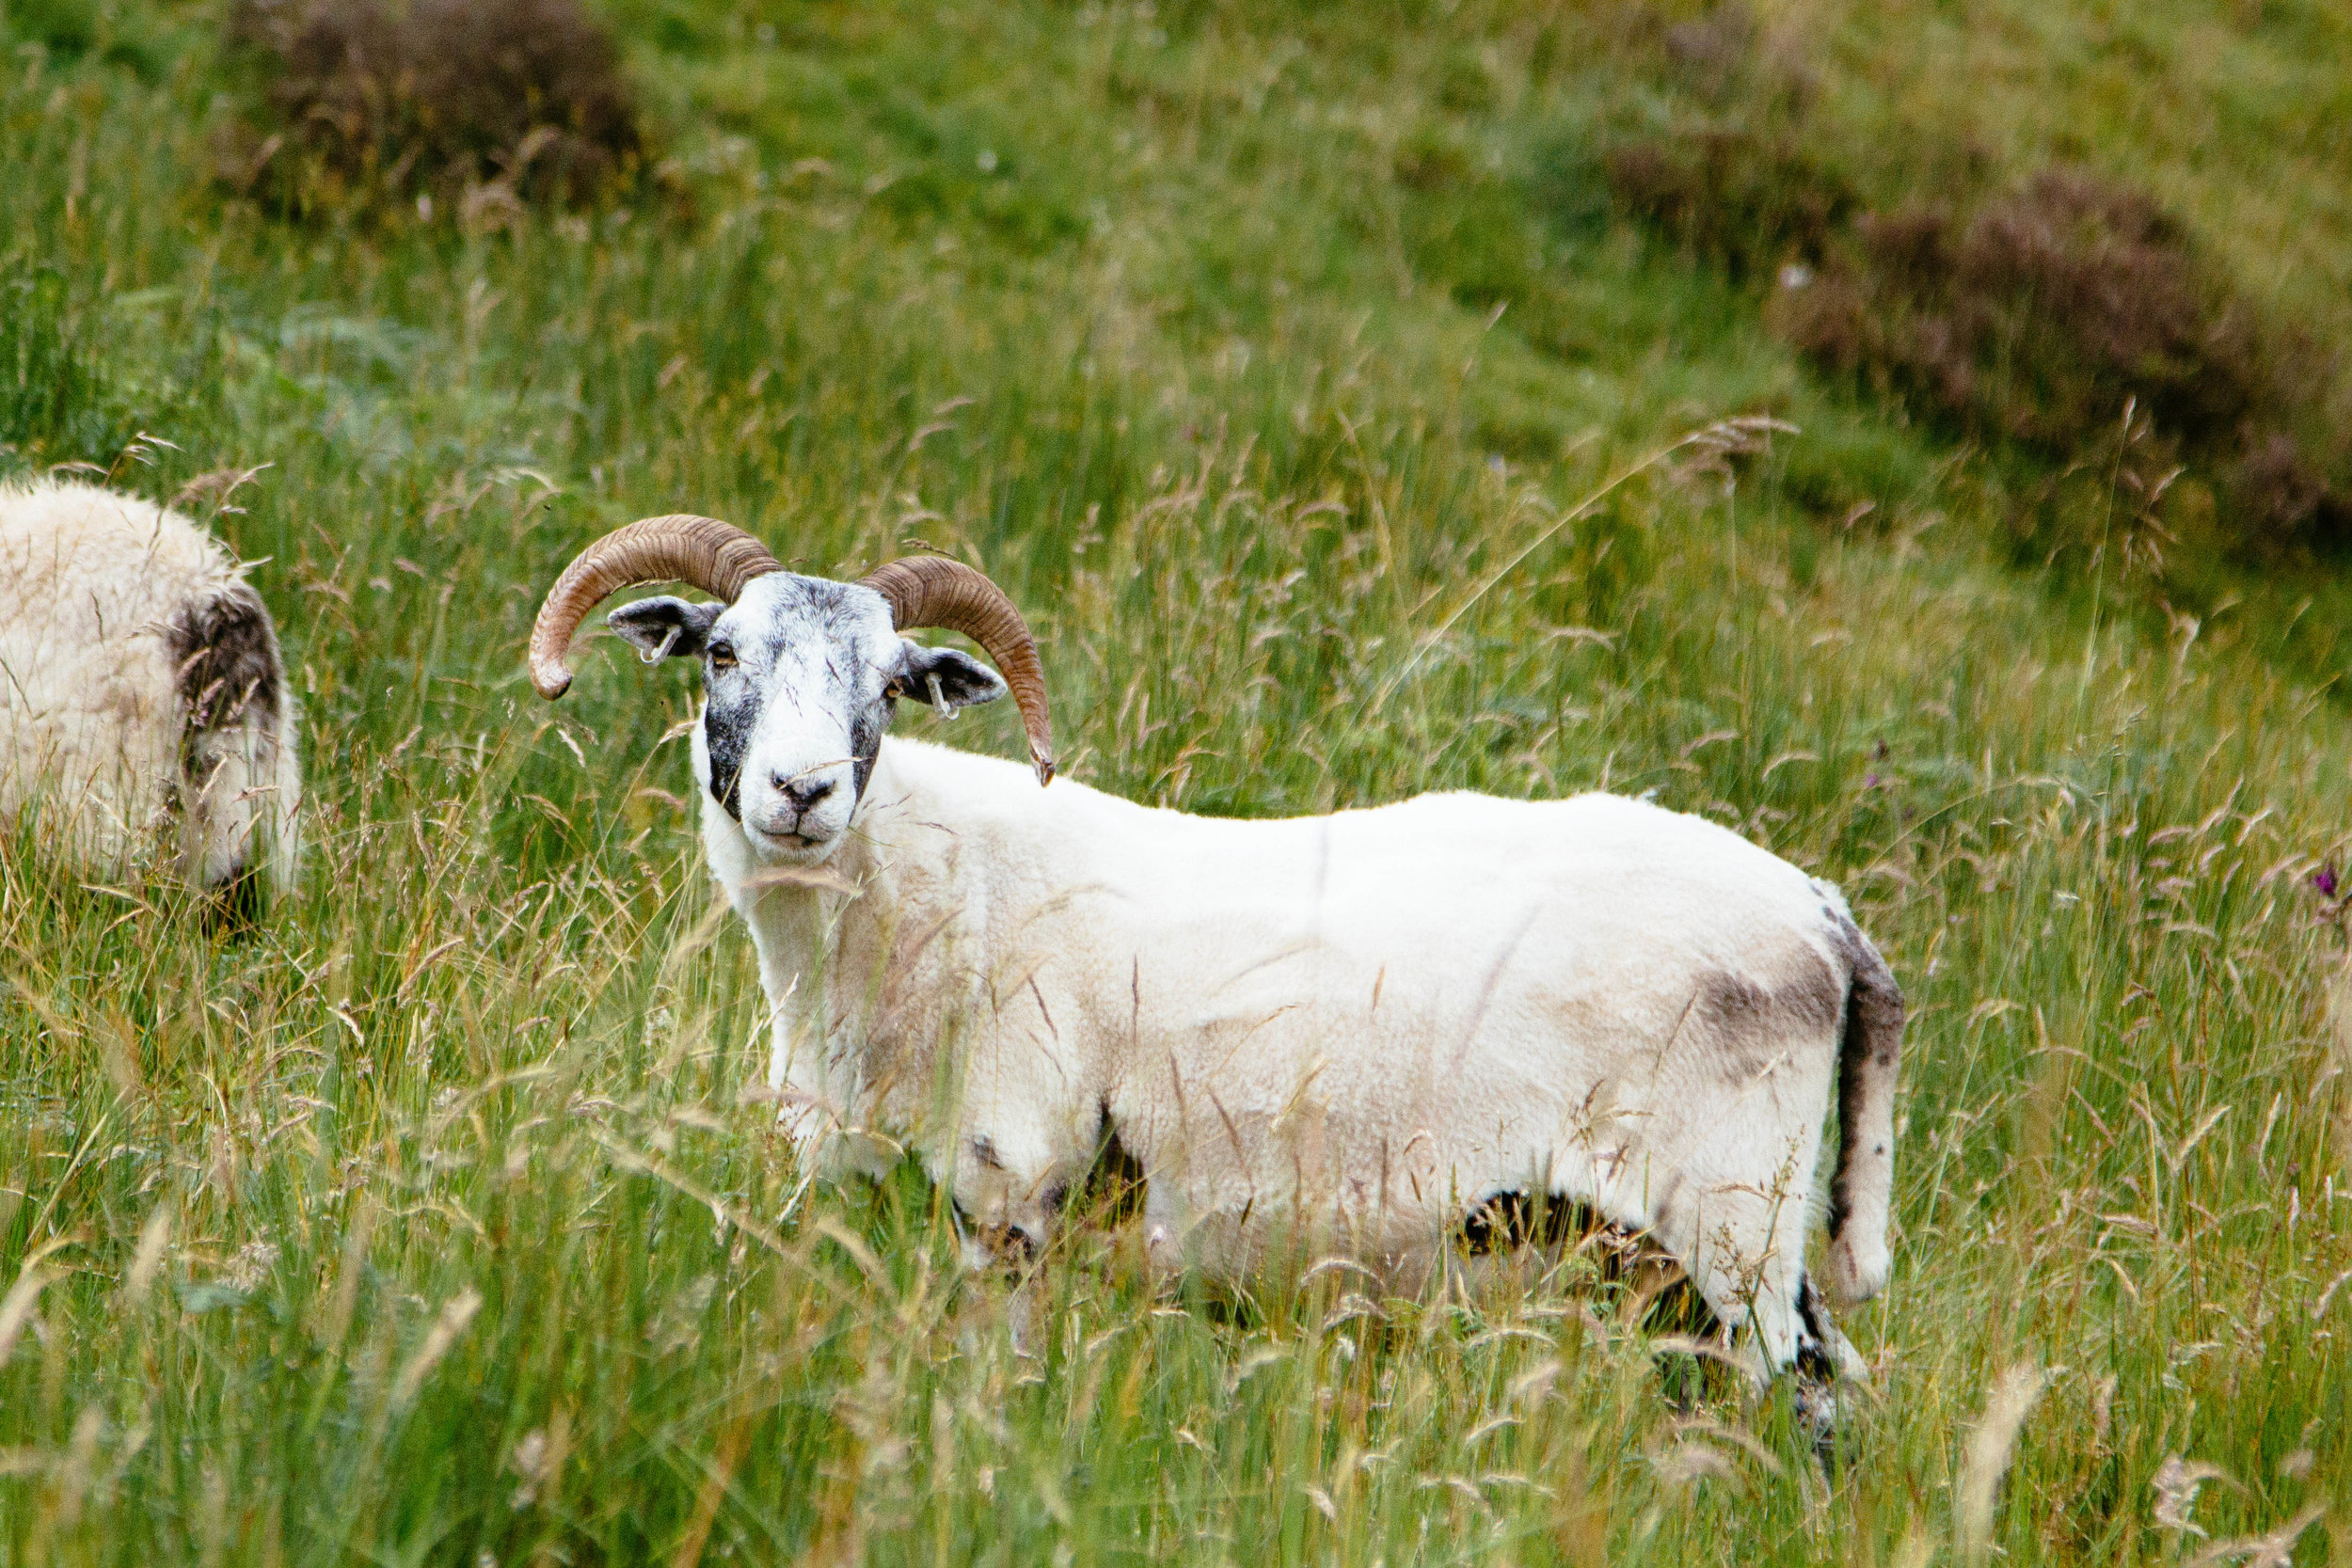 A recently sheered Scottish sheep